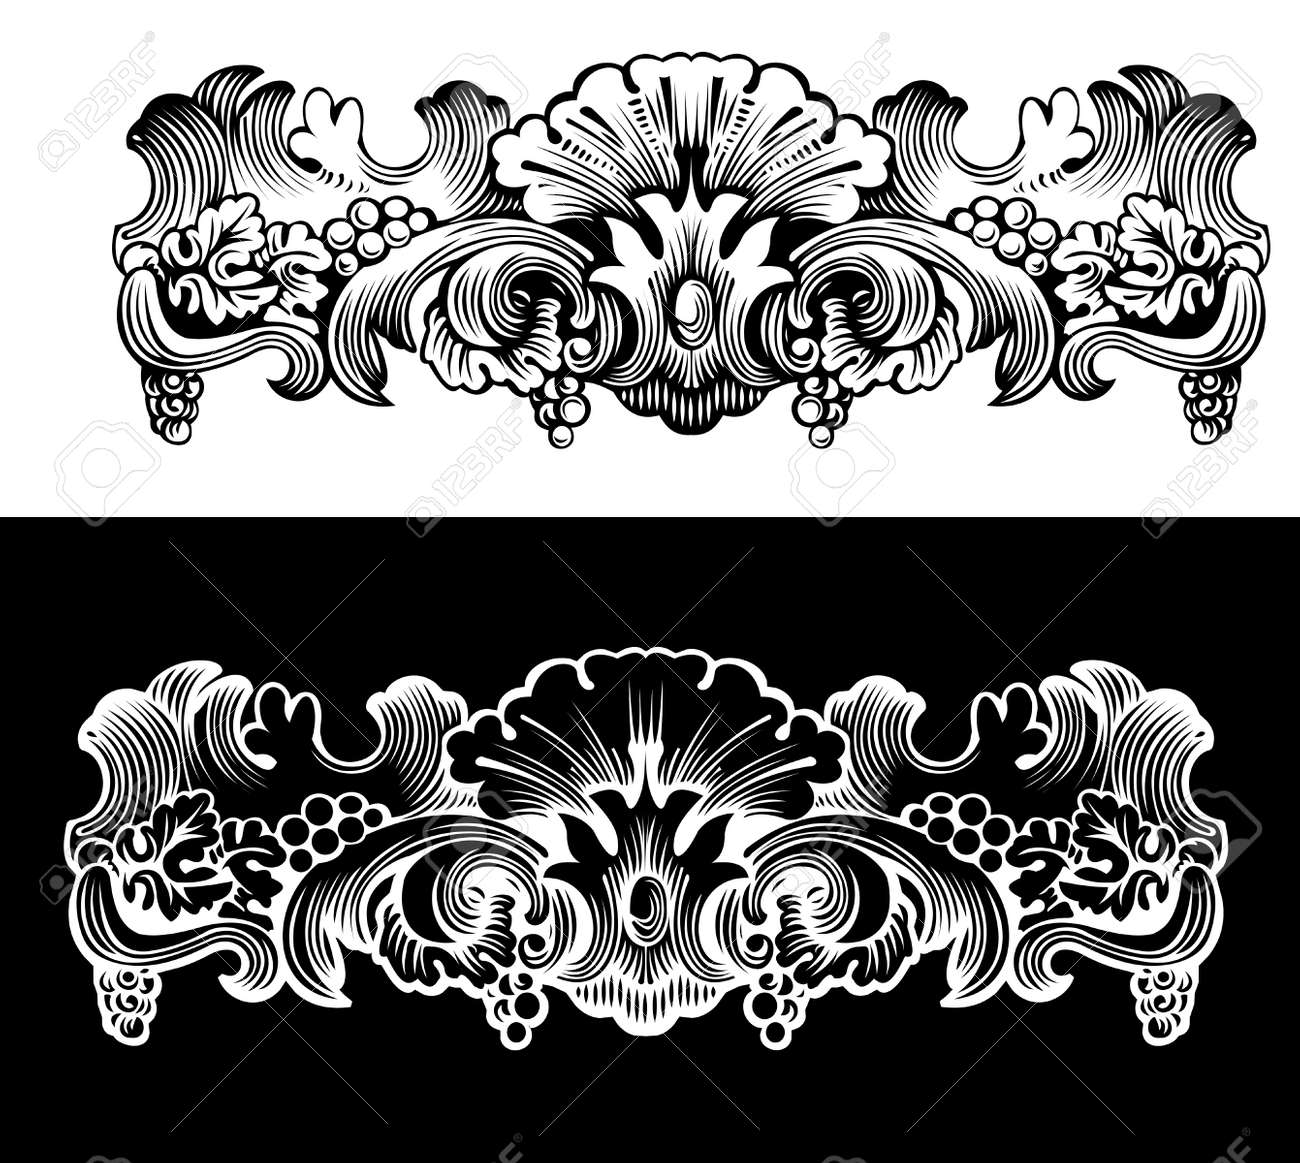 Antique Design Ekement Engraving, Scalable And Editable Vector Illustration Stock Vector - 8336518